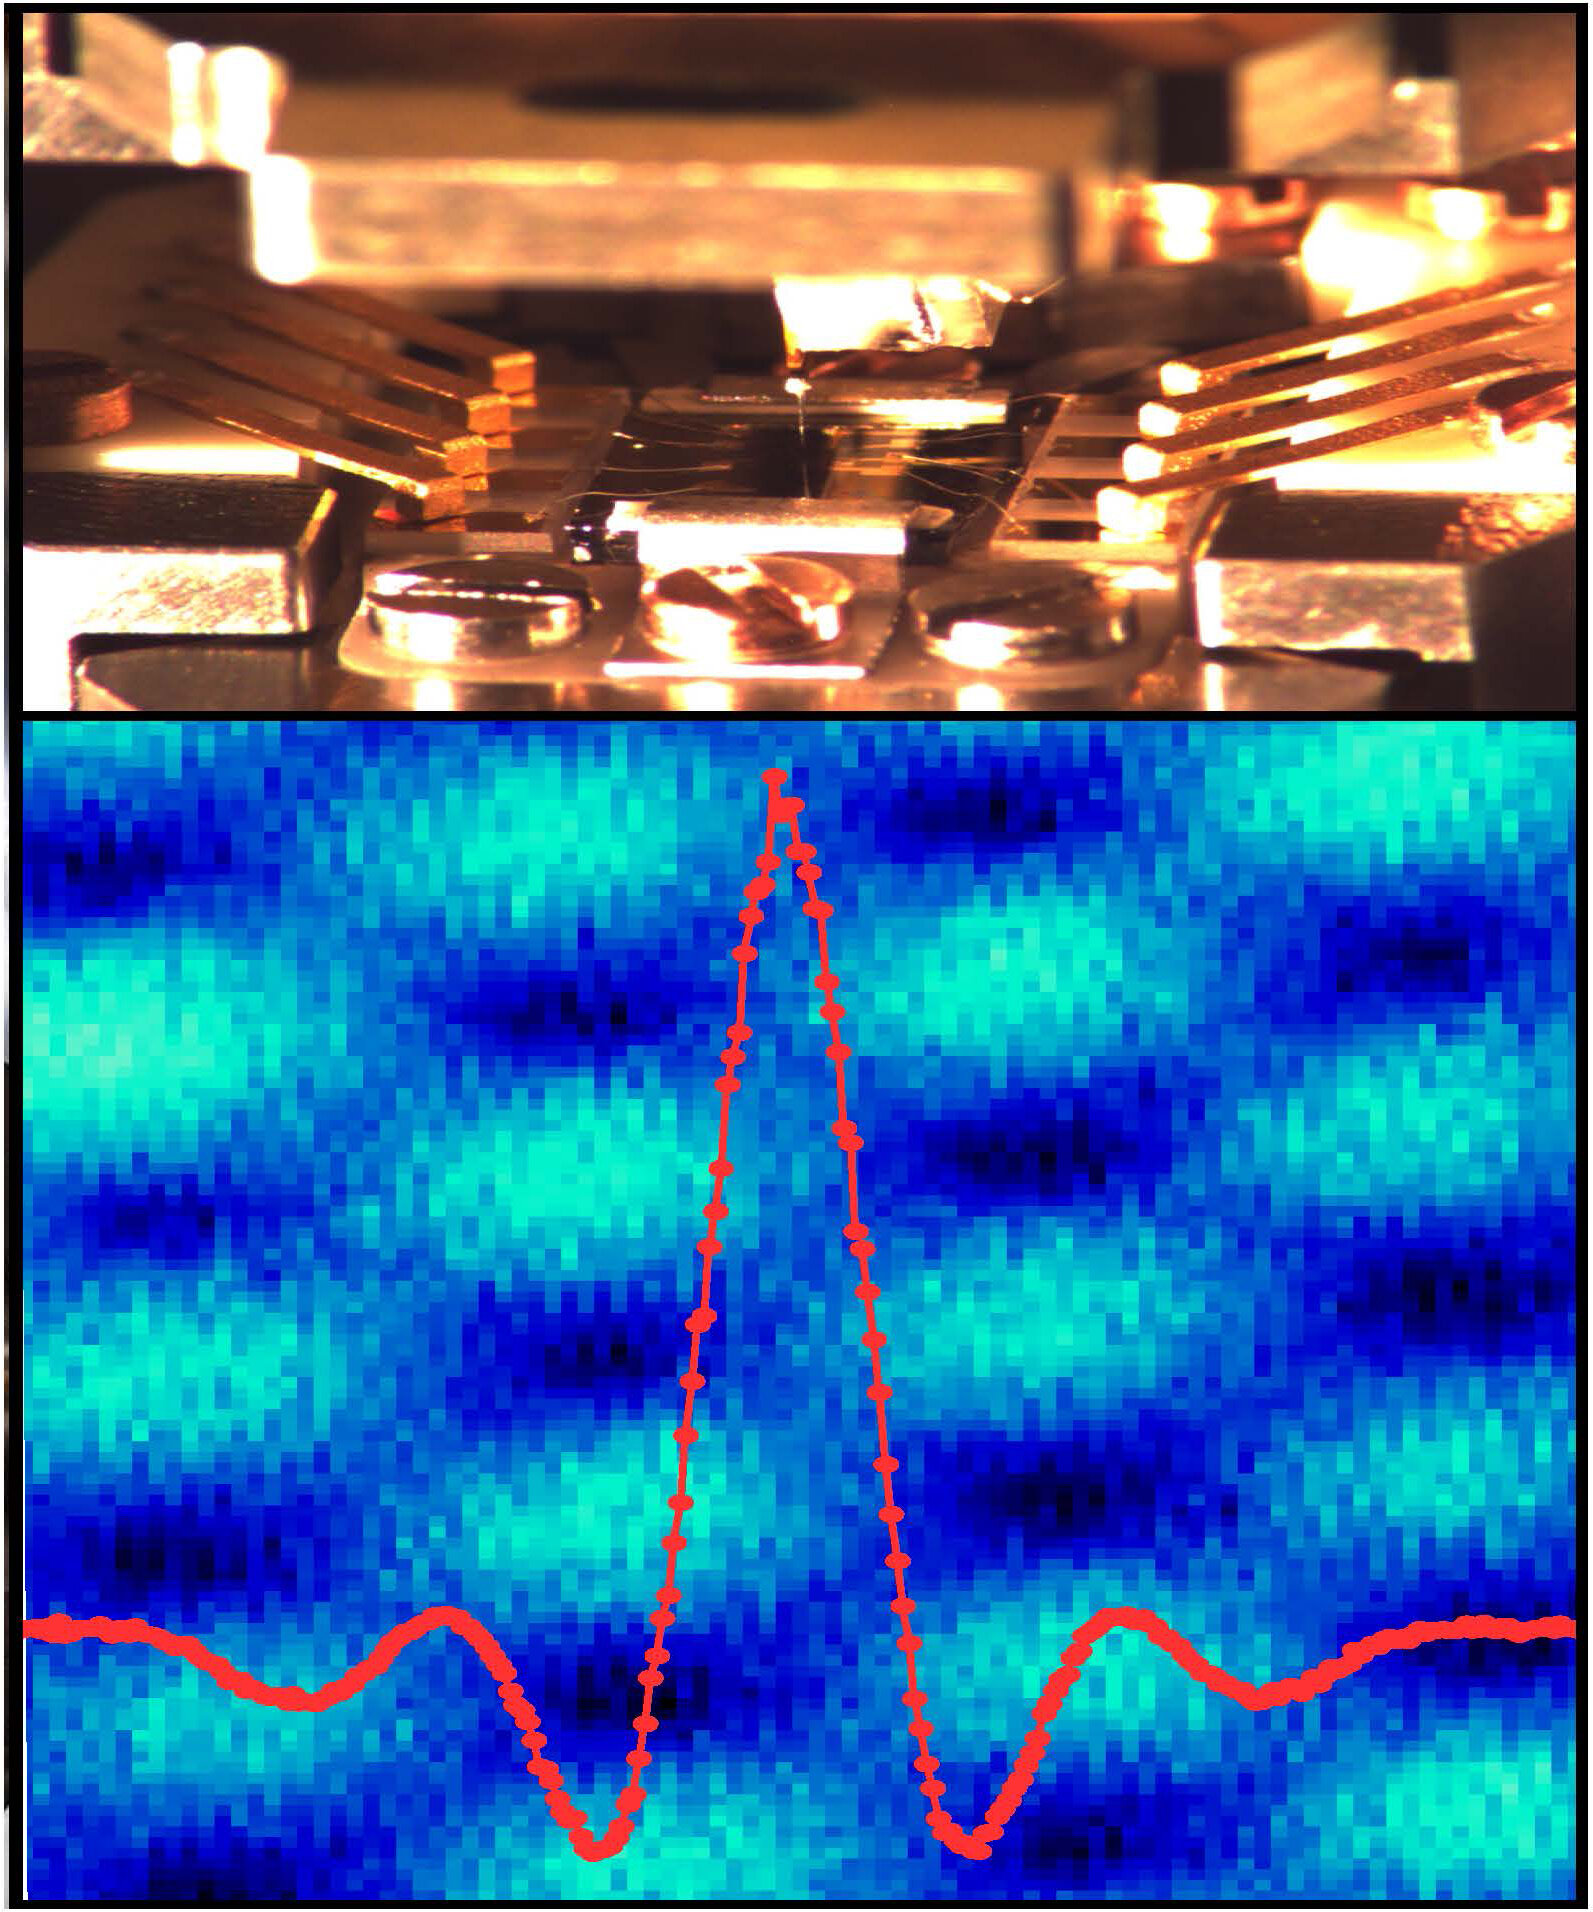 Top: Photo of a sample inside the scanning probe module showing the eight electrical contacts to a plate containing the sample to be studied. In the center the probe tip and its reflection in the sample can be seen. Bottom: Atomic force image of an aluminum sample showing the arrangement of atoms measured at 0.01 Kelvin (-459.65 degree Fahrenheit). The red curve shows the aluminum film is superconducting by having an electrical current with zero voltage. Credit: NIST